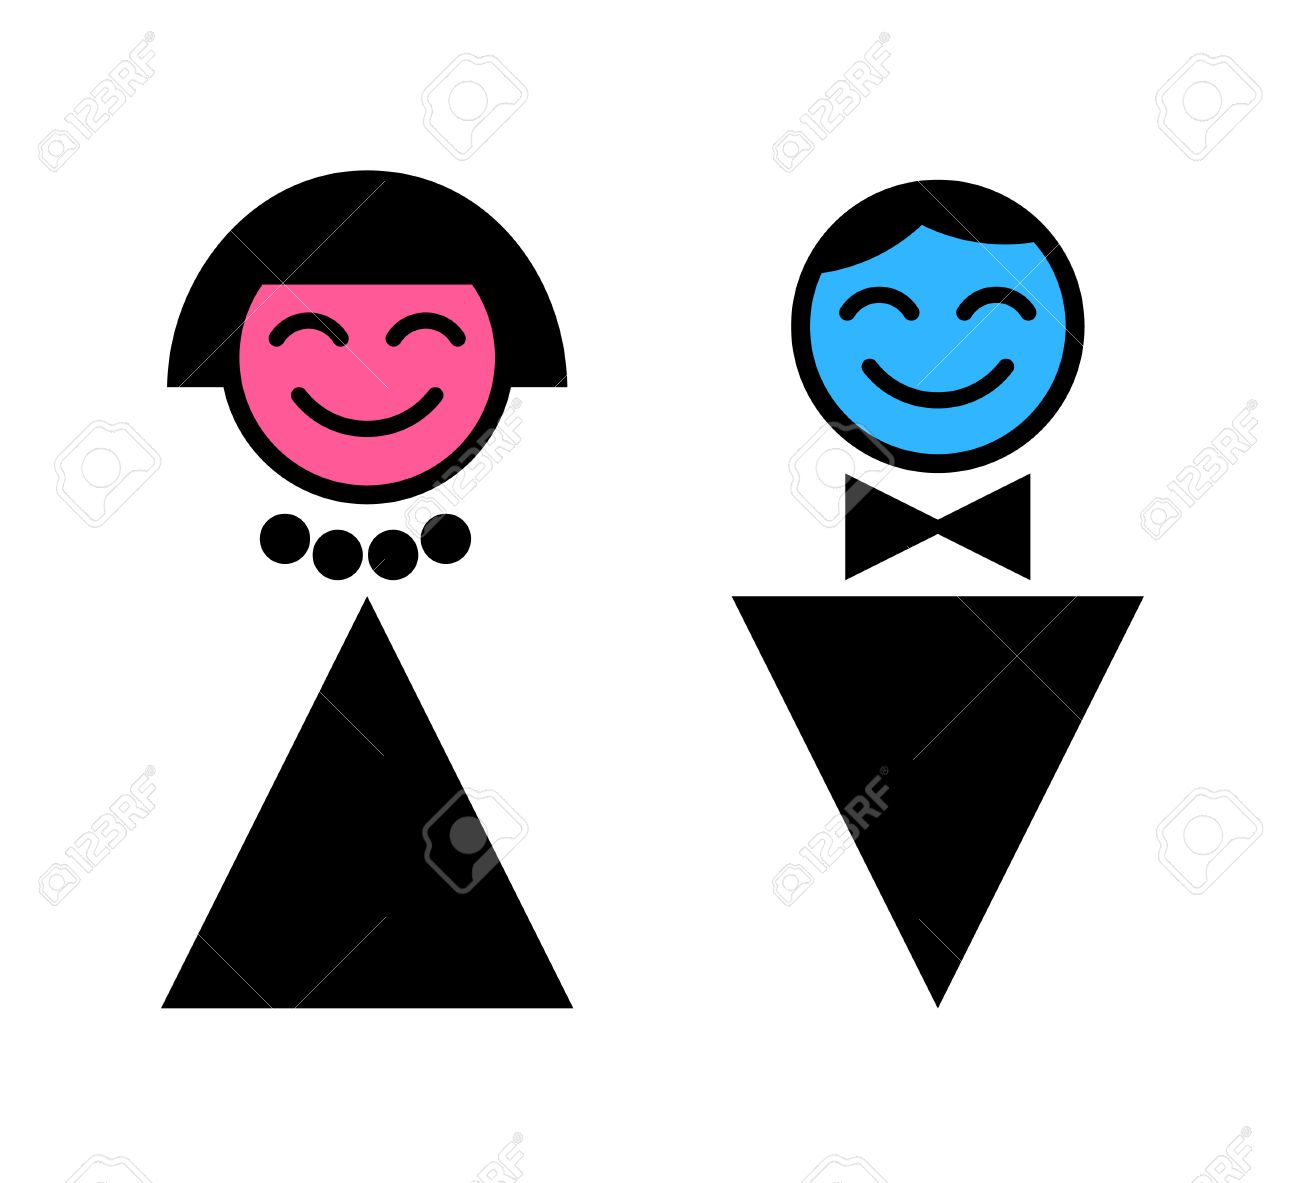 Bathroom Sign Man And Woman 24,761 restroom sign cliparts, stock vector and royalty free